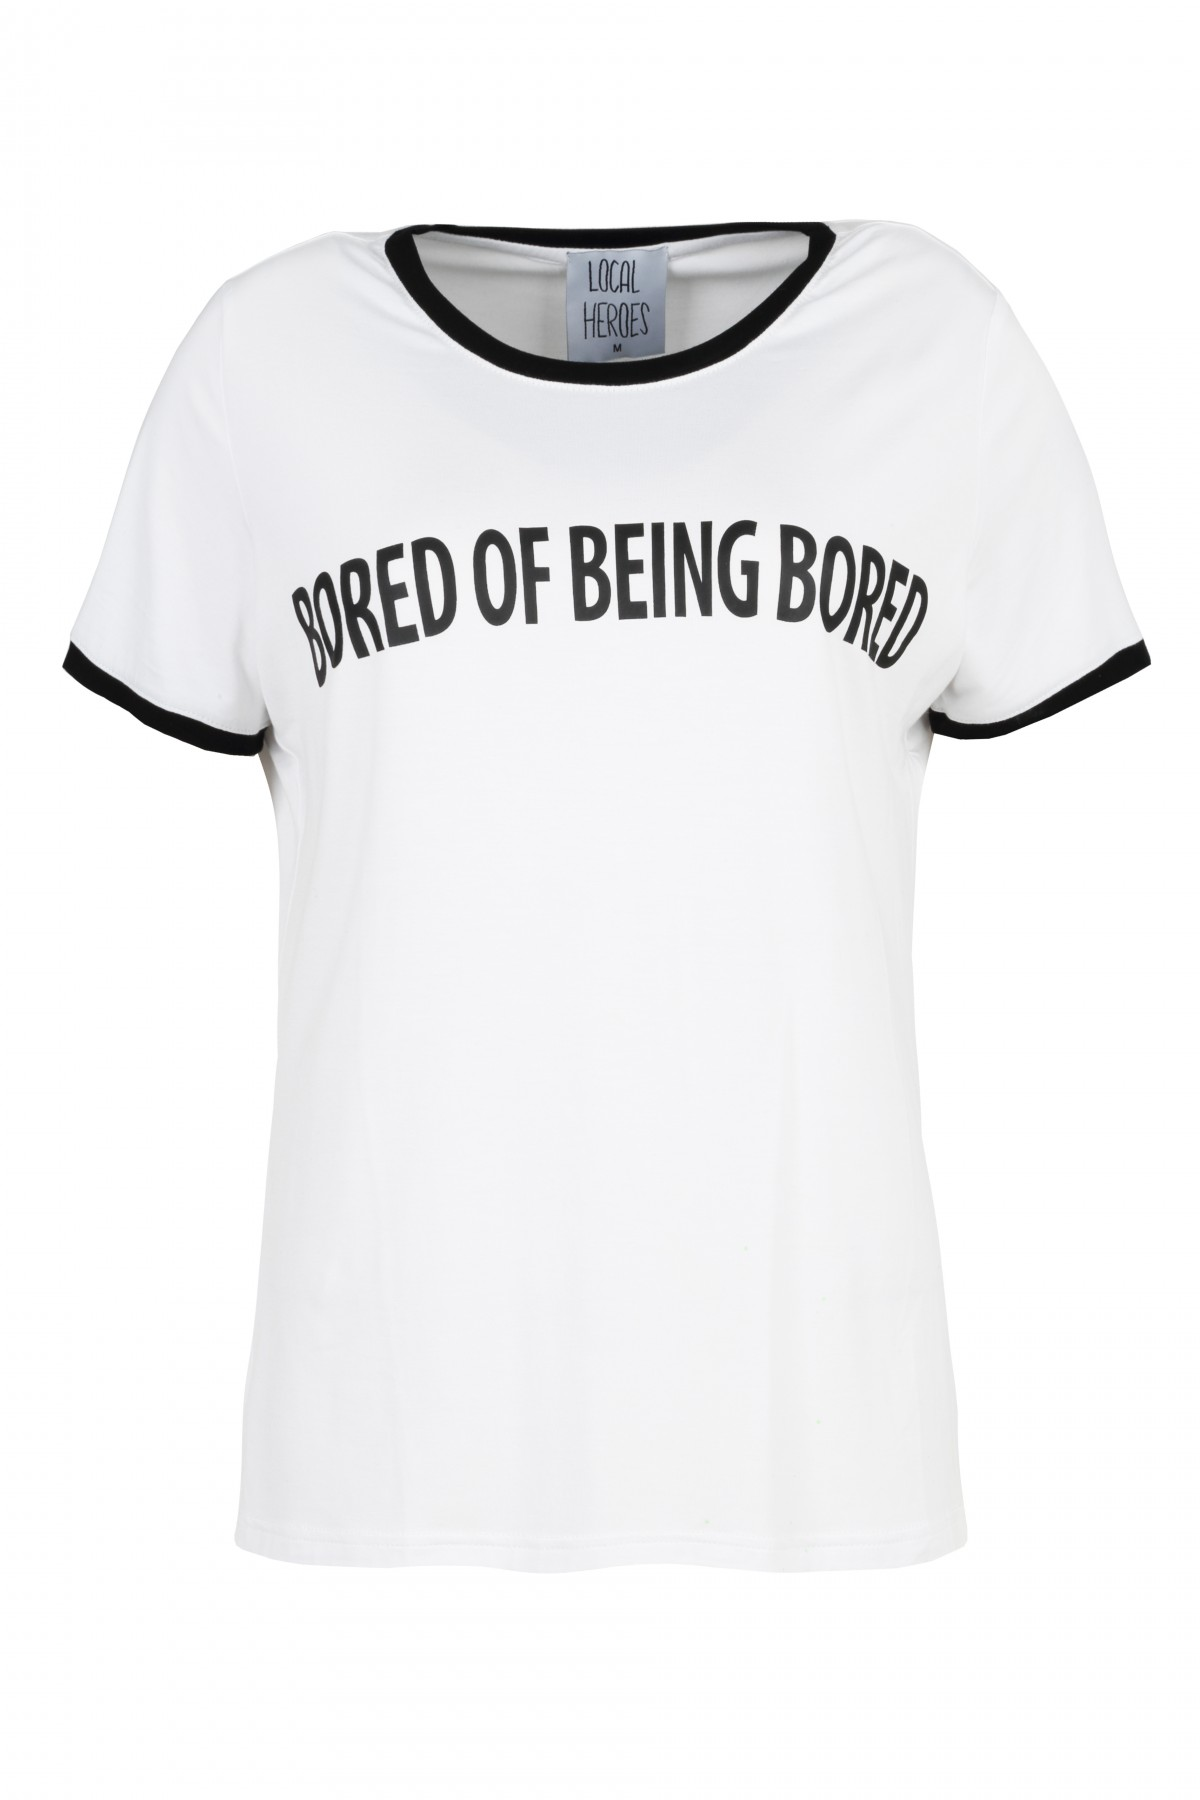 Bored of being bored ringer tee